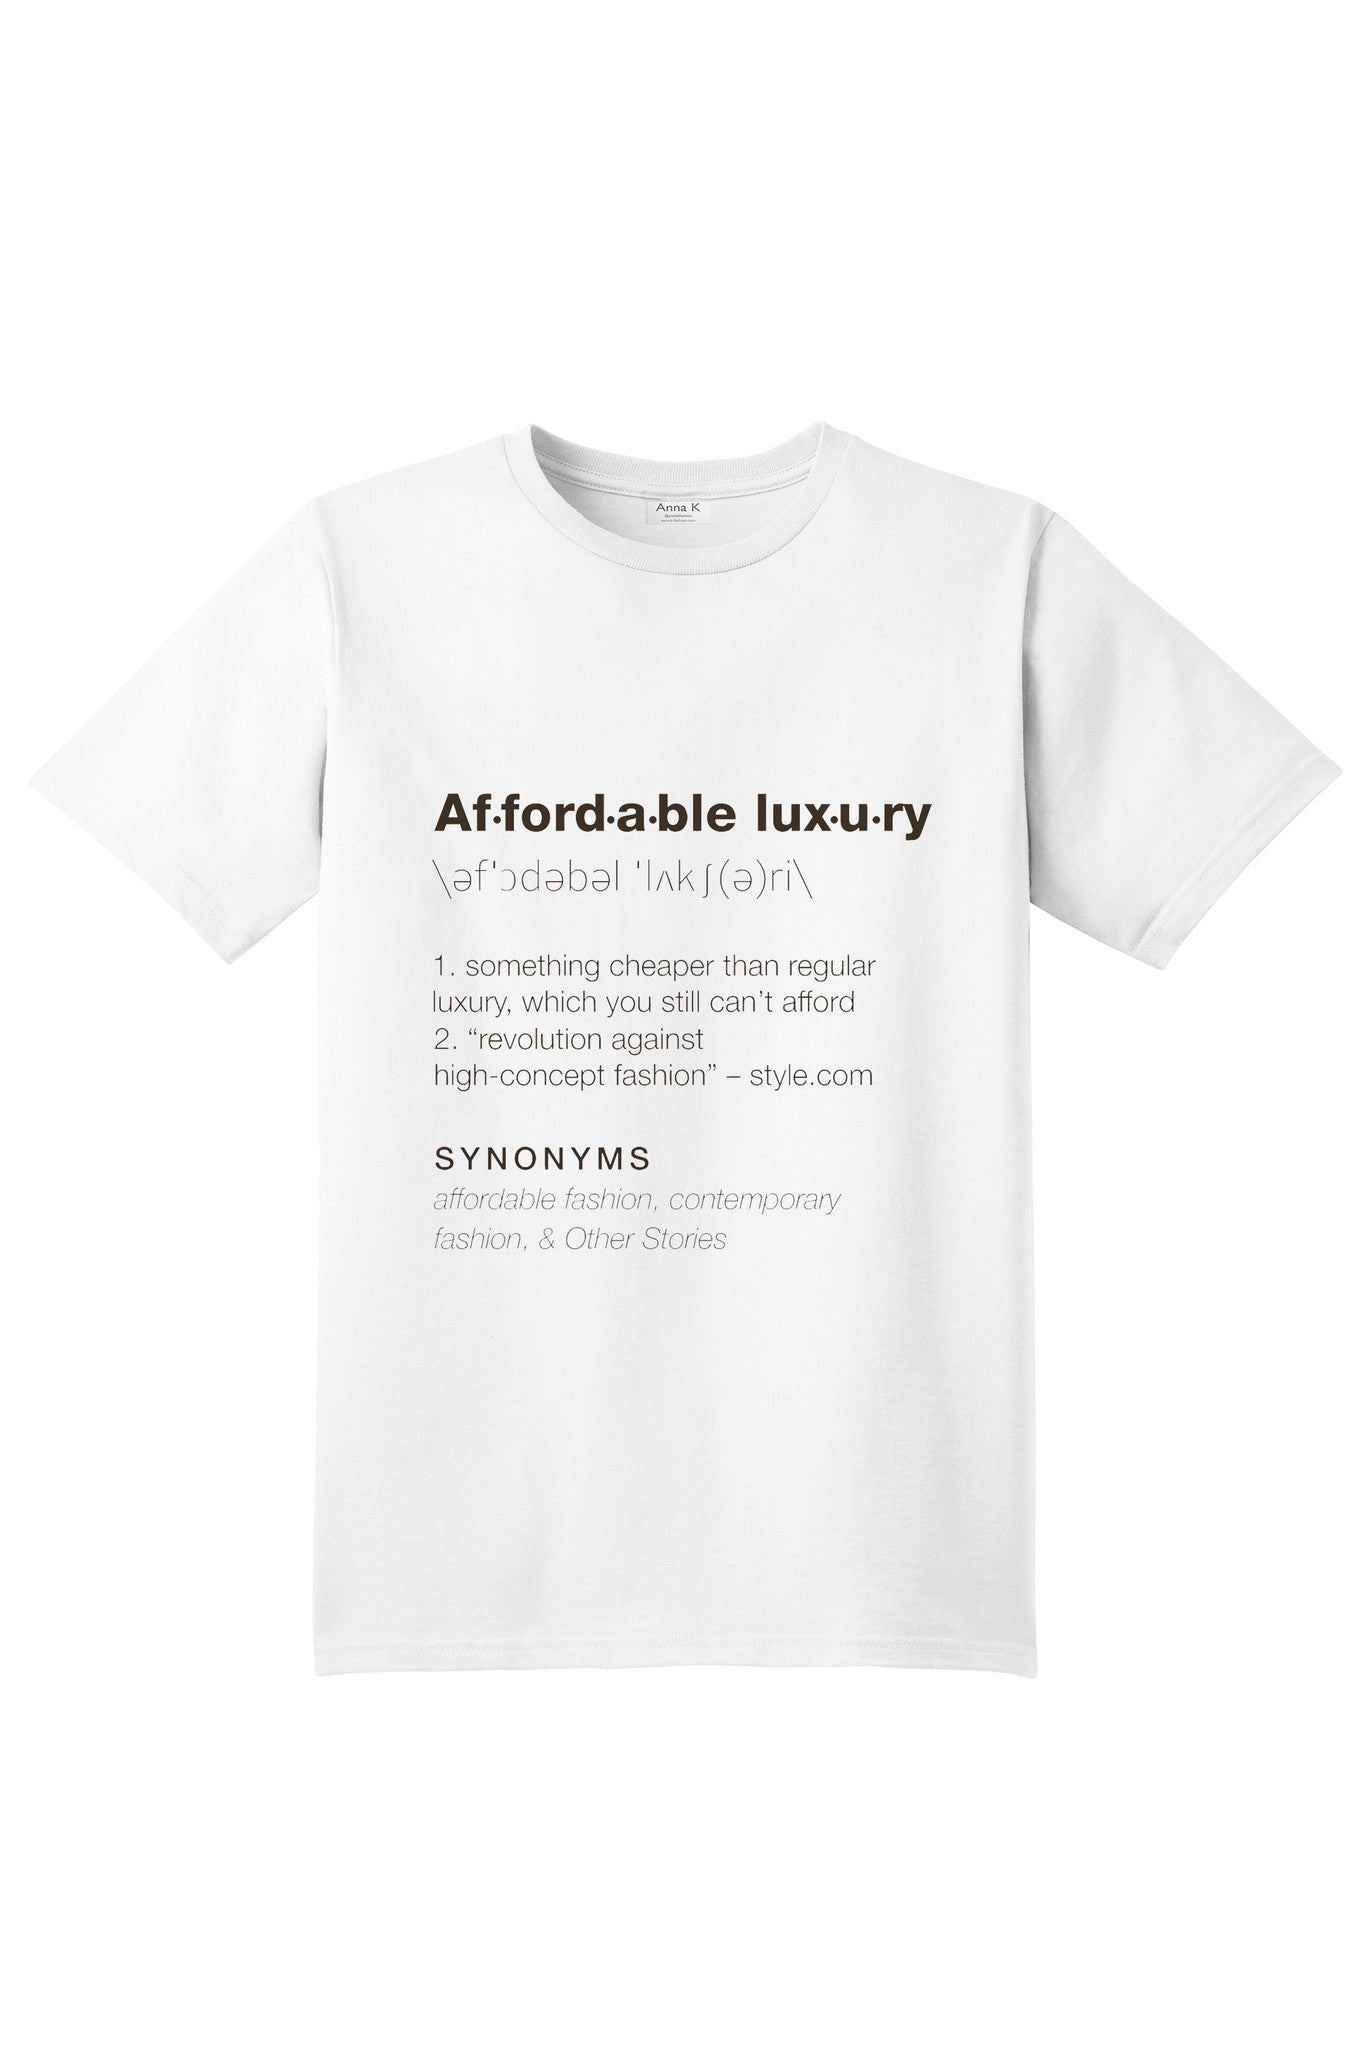 Affordable luxury - Anna K